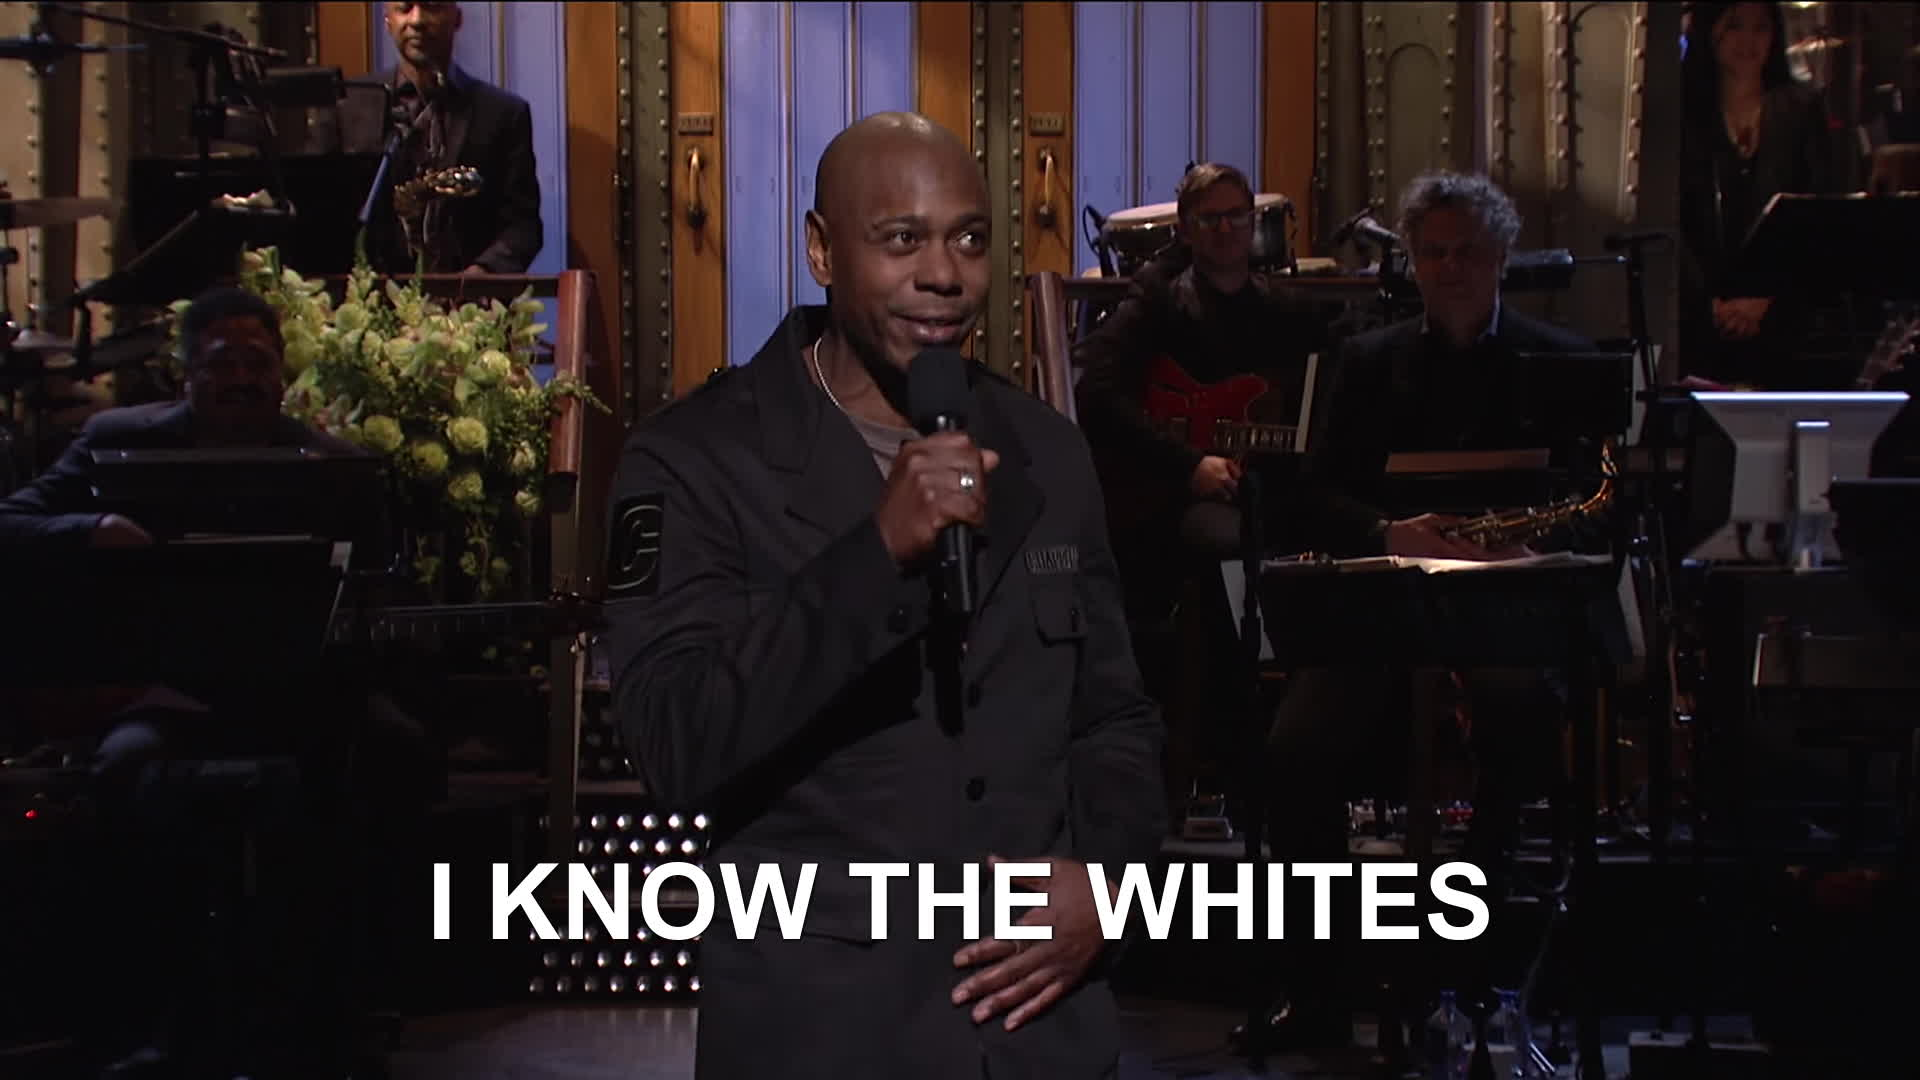 chappelle's show, comedy, dave chappelle, dave chappelle stand up, netflix, saturday night live, season 42, snl, stand up, stand up comedy,